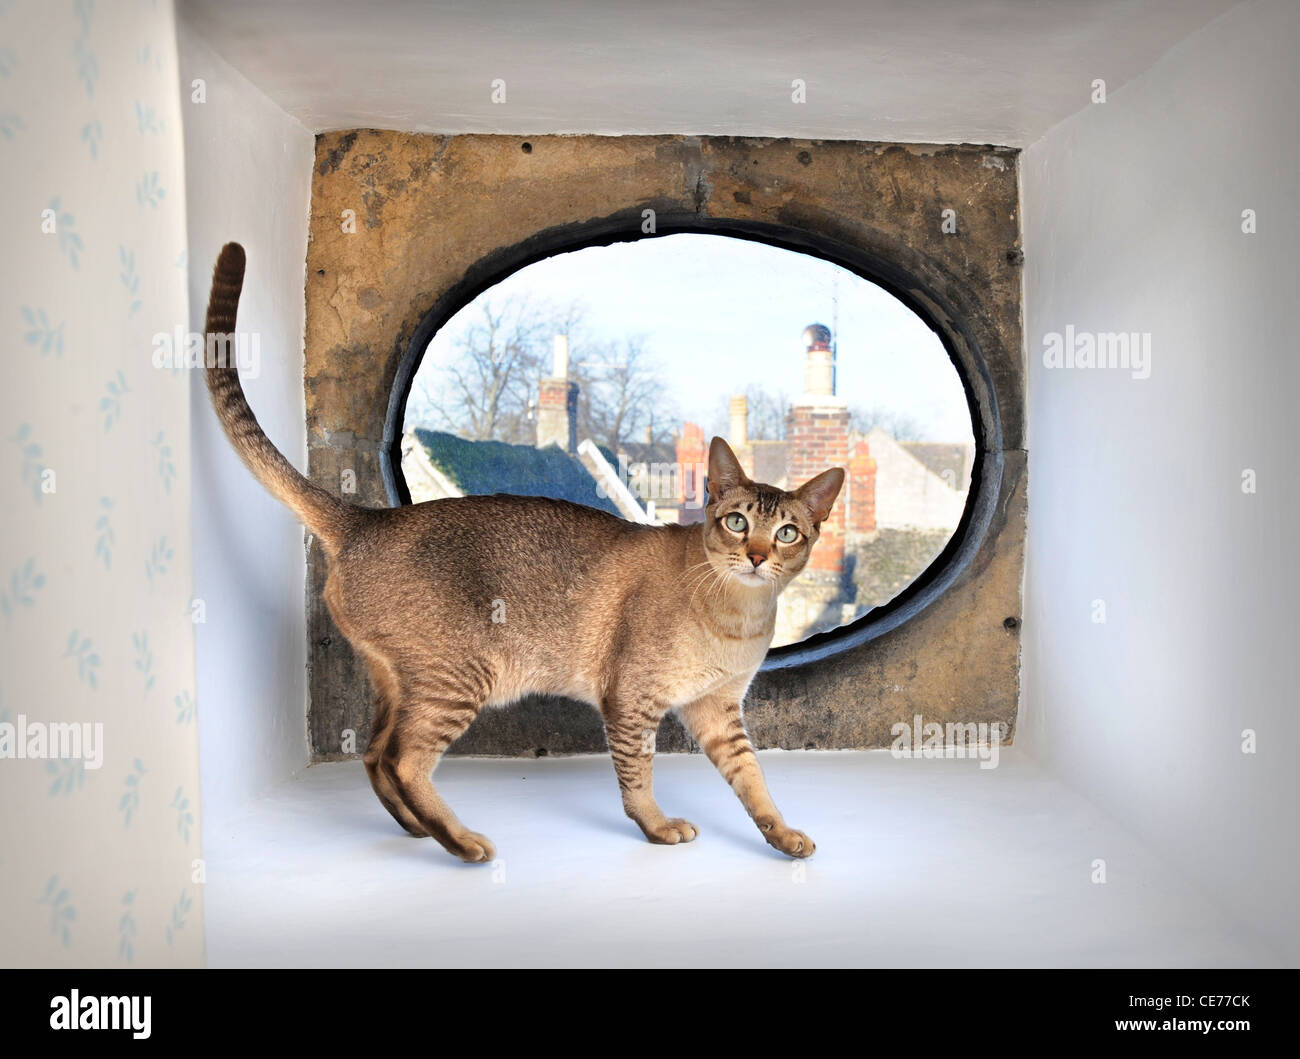 A pet cat in a window alcove of a period town house, Gloucestershire UK - Stock Image